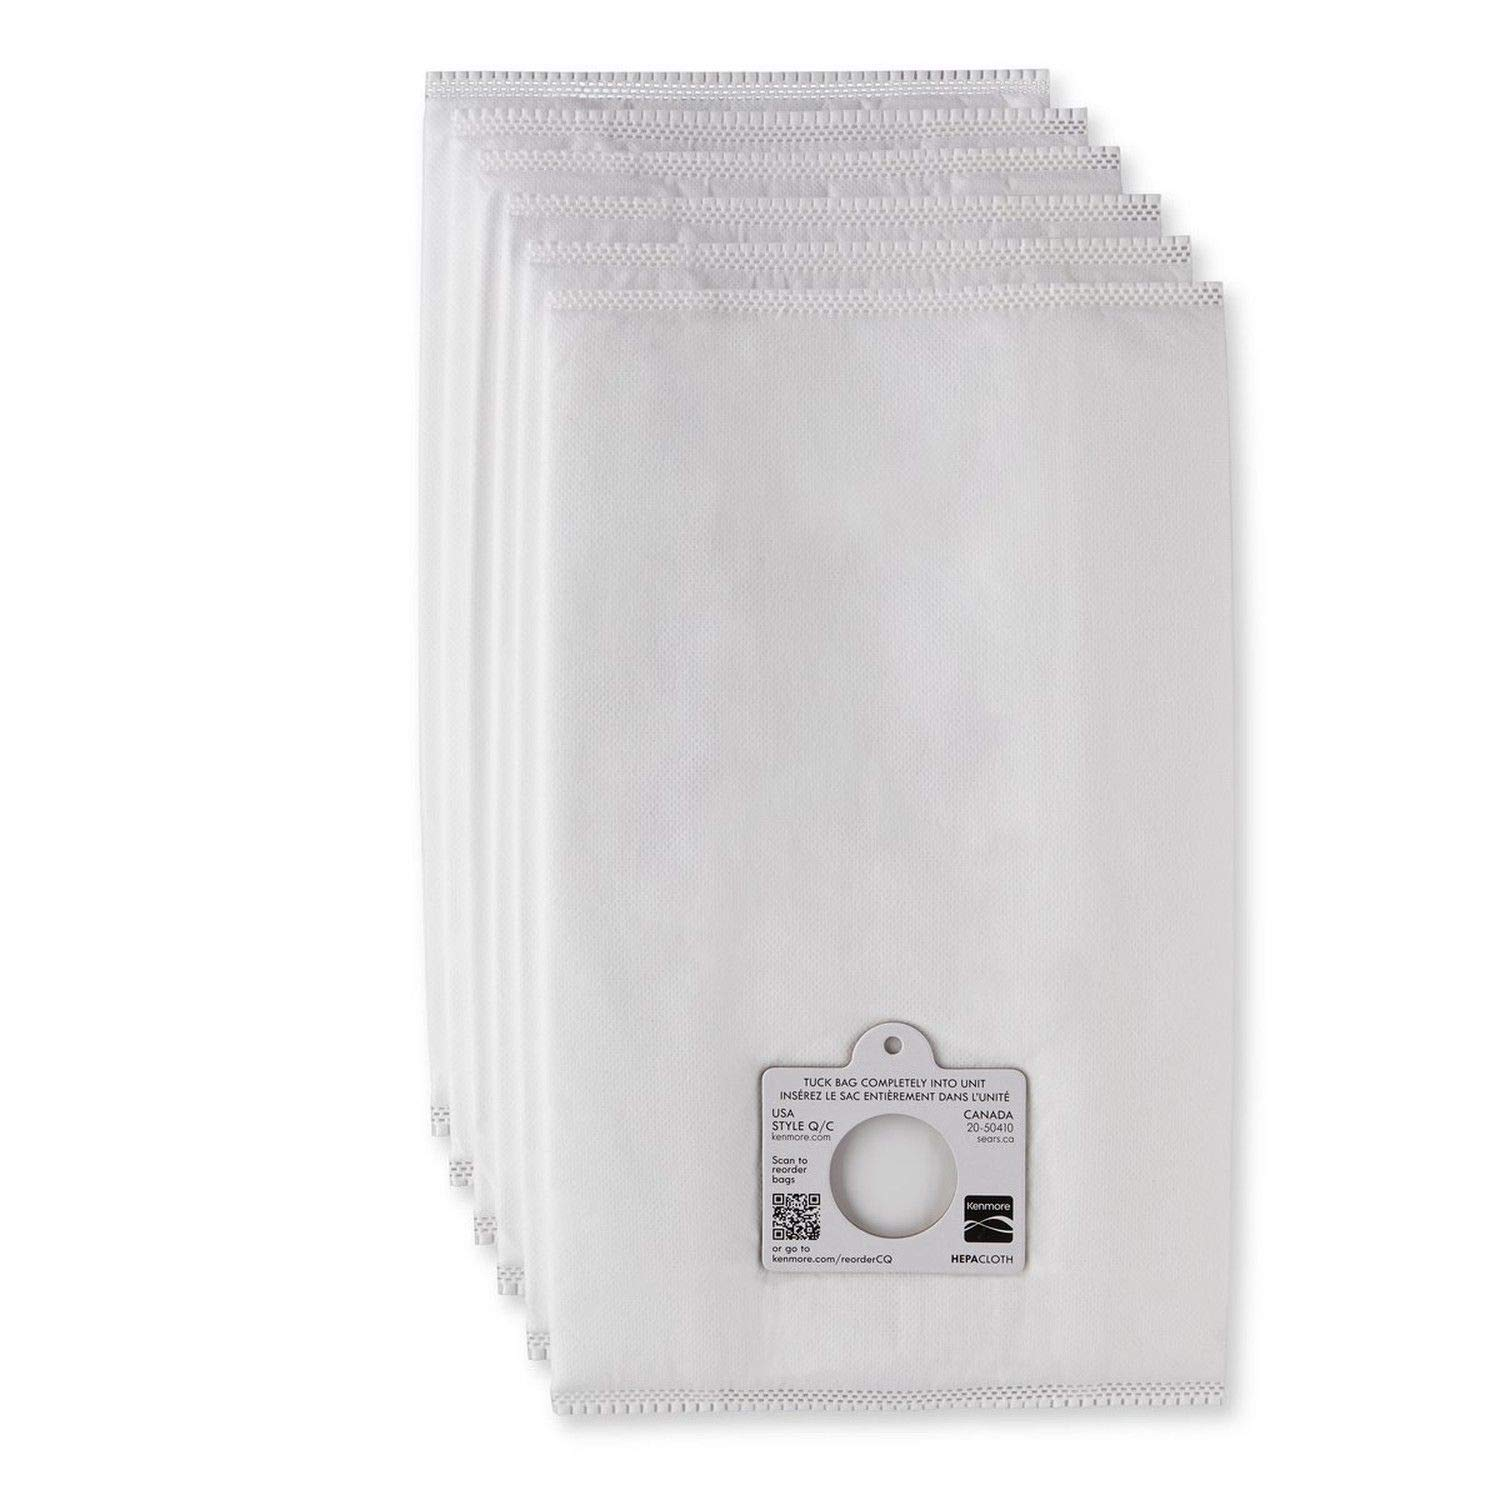 Sears Genuine 6-Pack Кеnmоrе Canister Vacuum Bags 53292 Type Q C HEPA for Canister Vacuums Cleaner